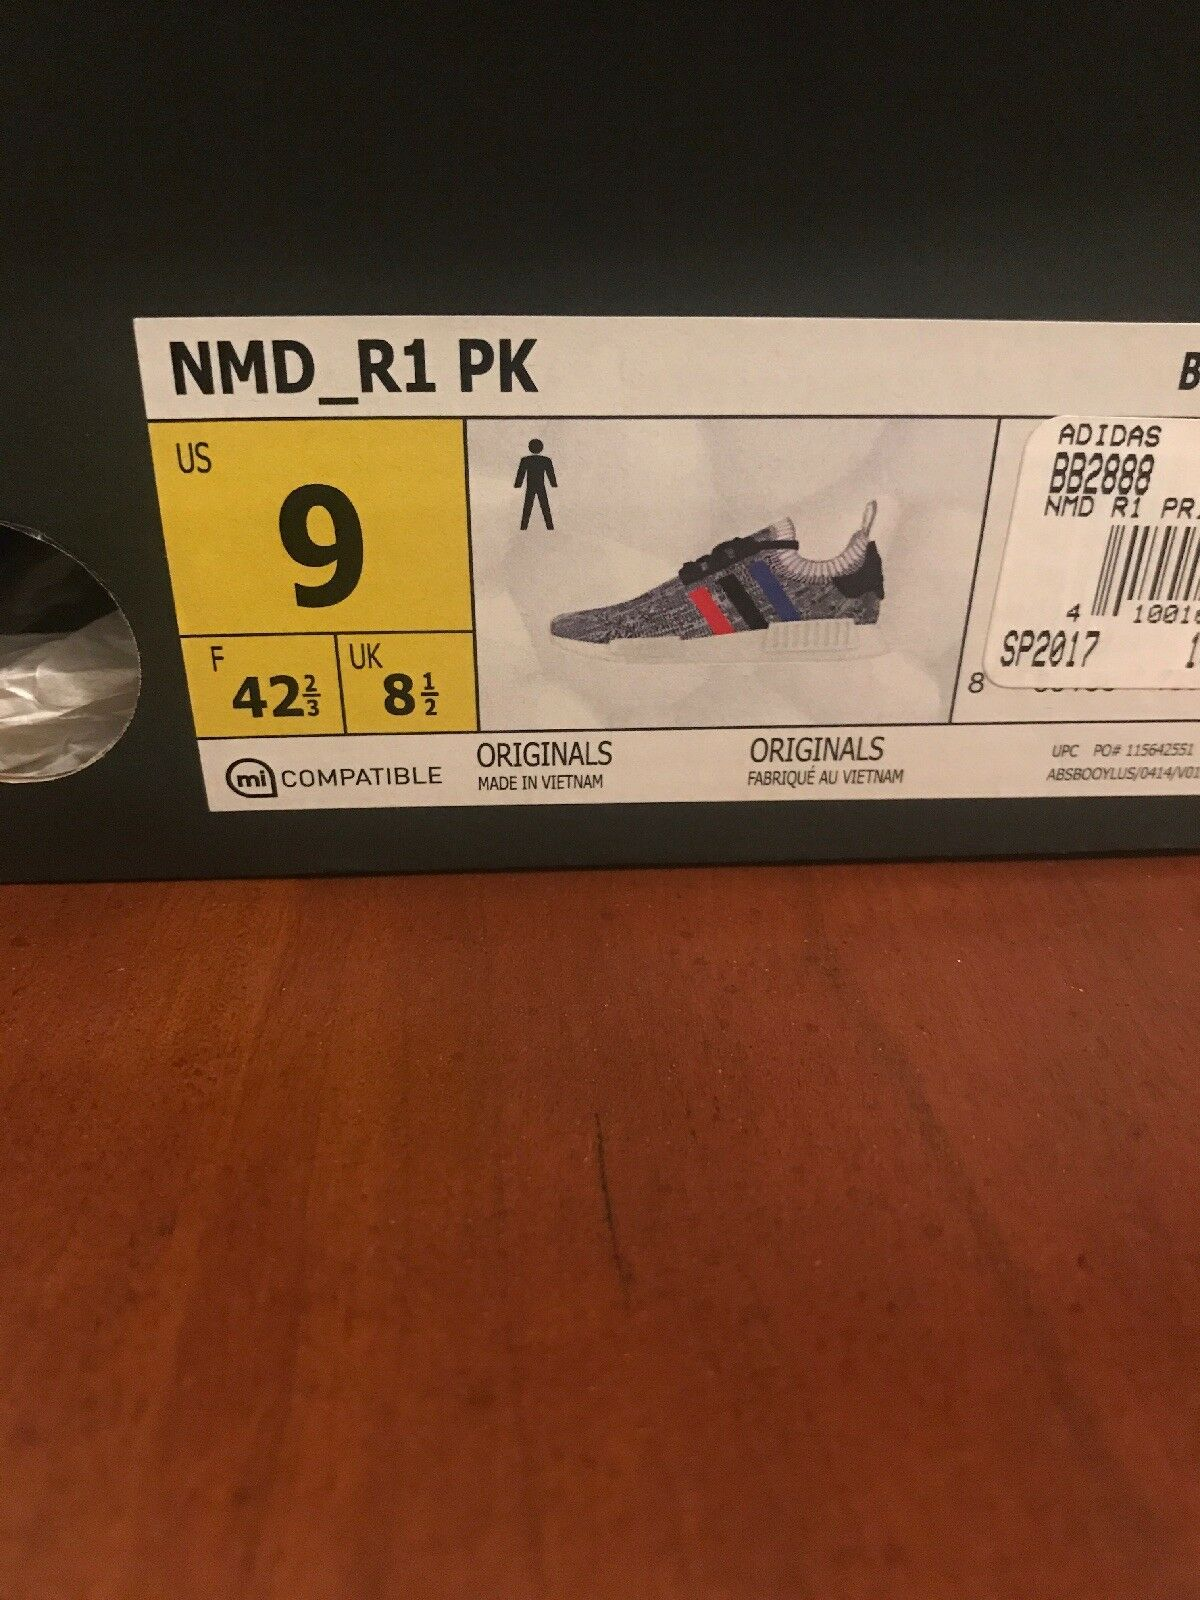 Nmd r1 pk tri color